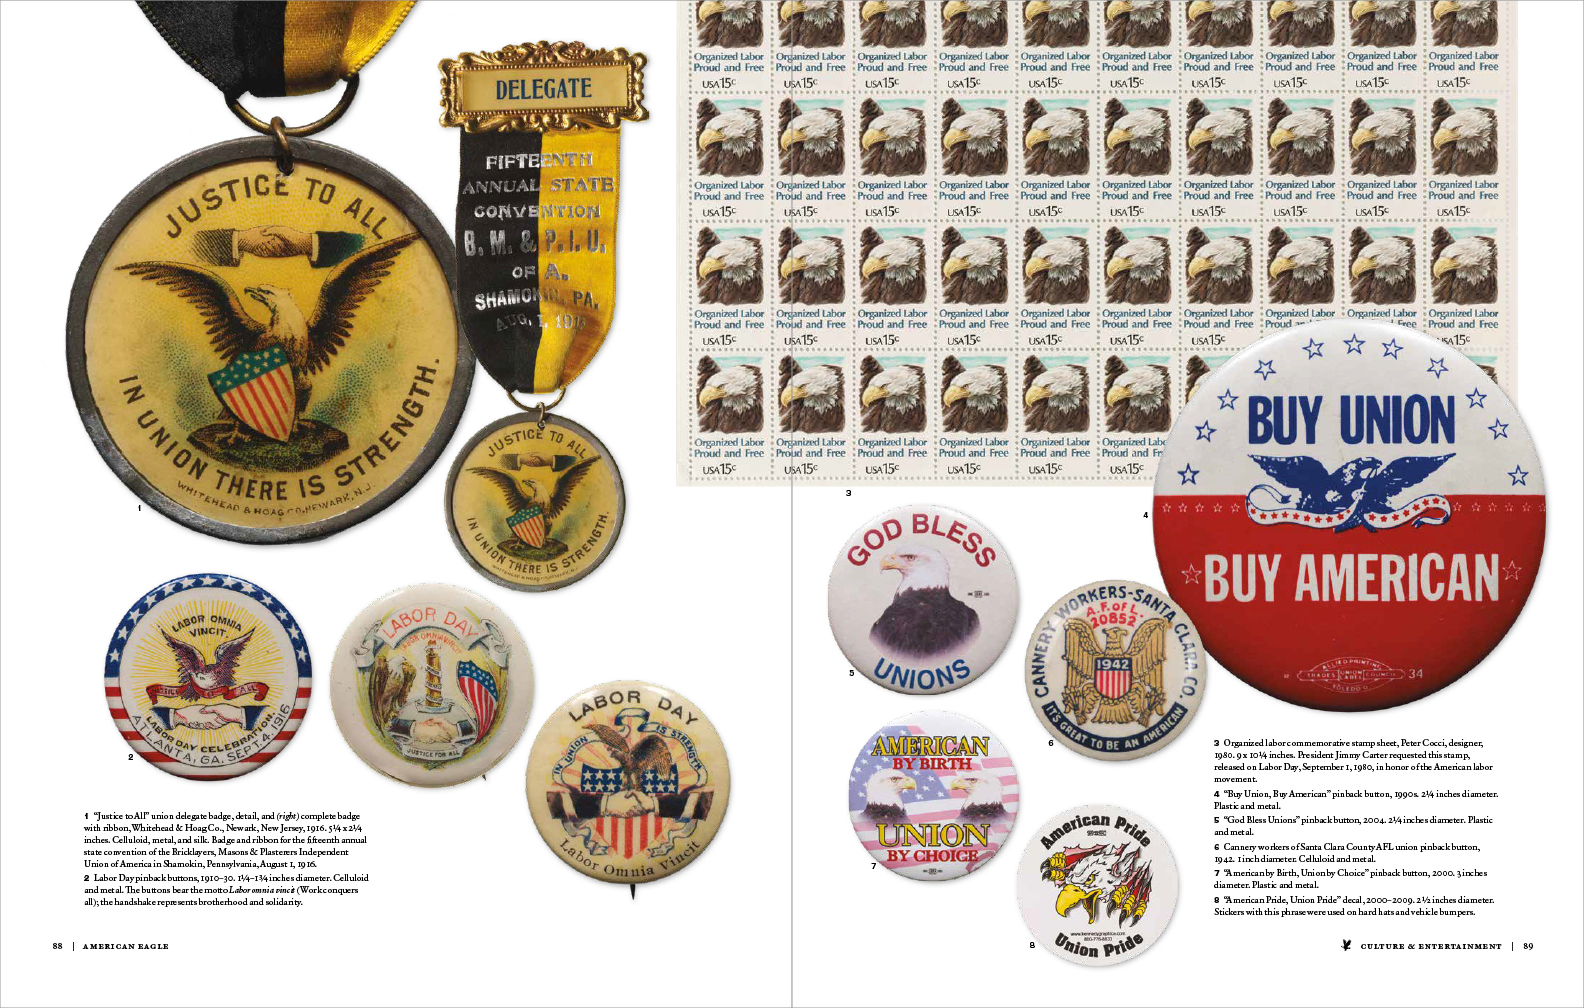 American_Eagle_Pages_88-89.jpg